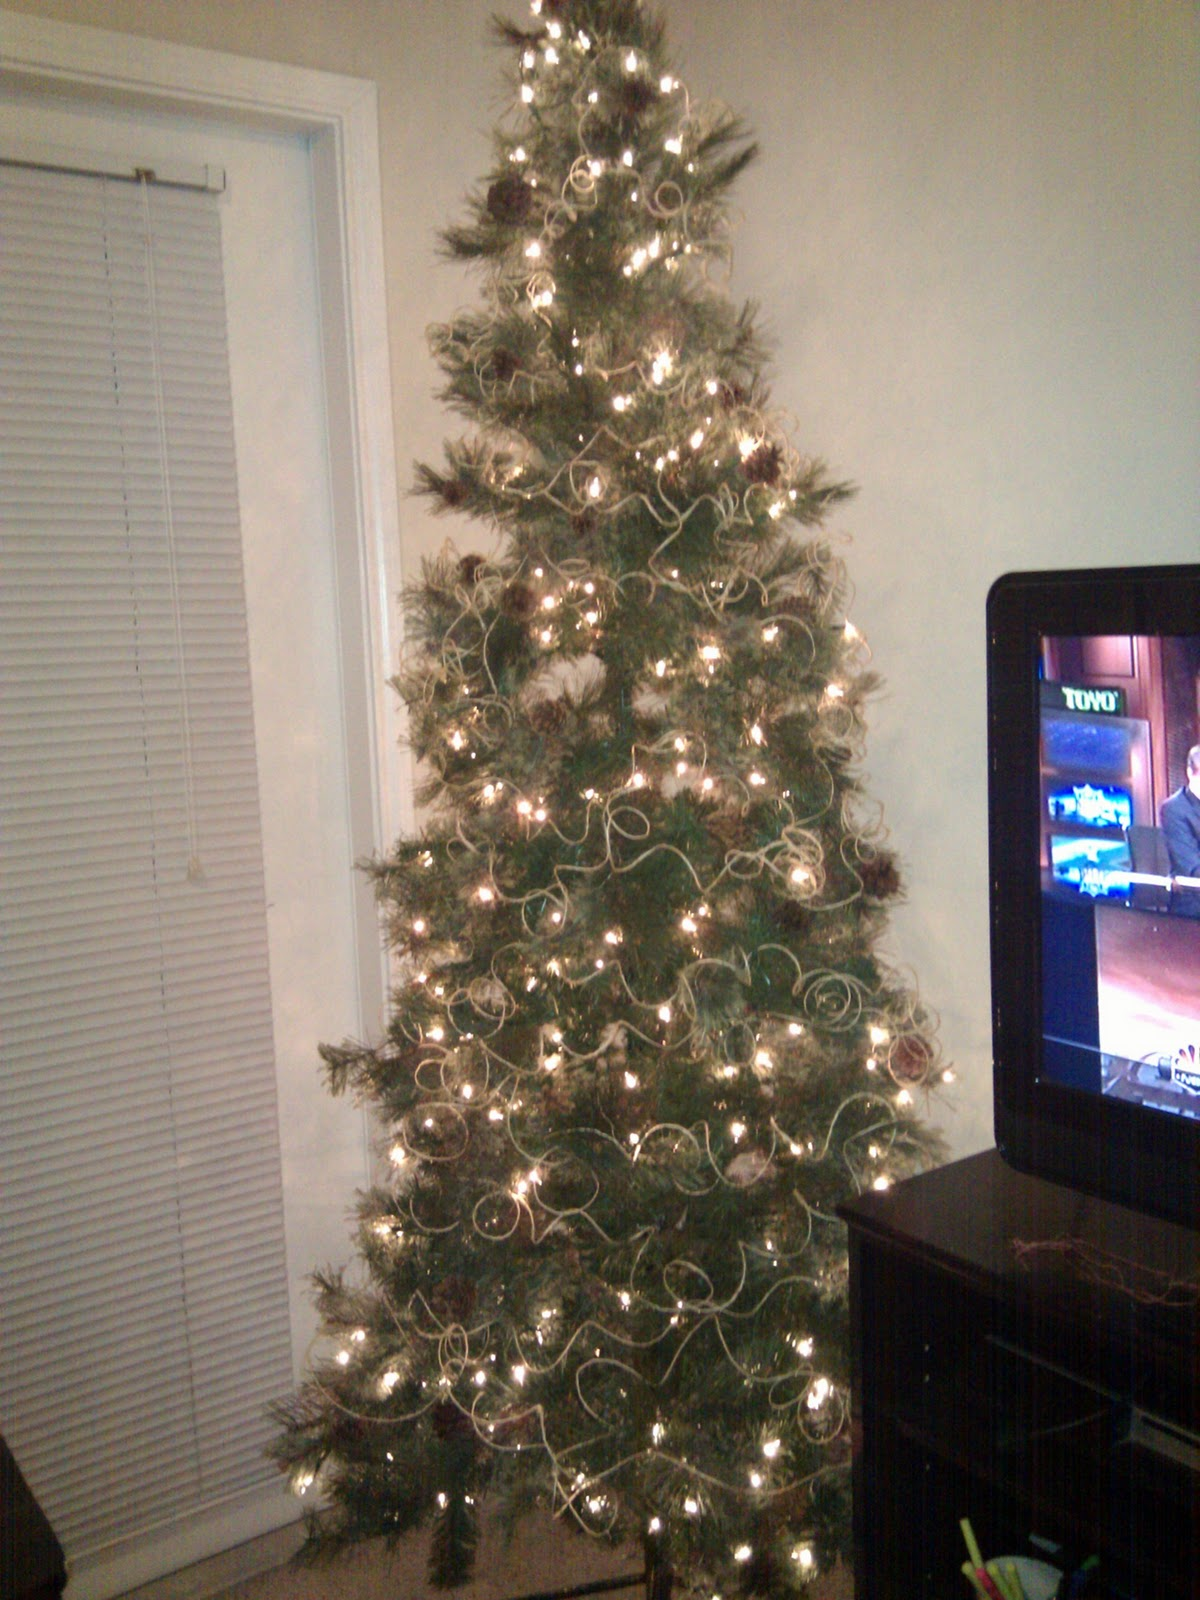 1000+ images about Sports Holiday Decorations on Pinterest ...  Texans Christmas Tree